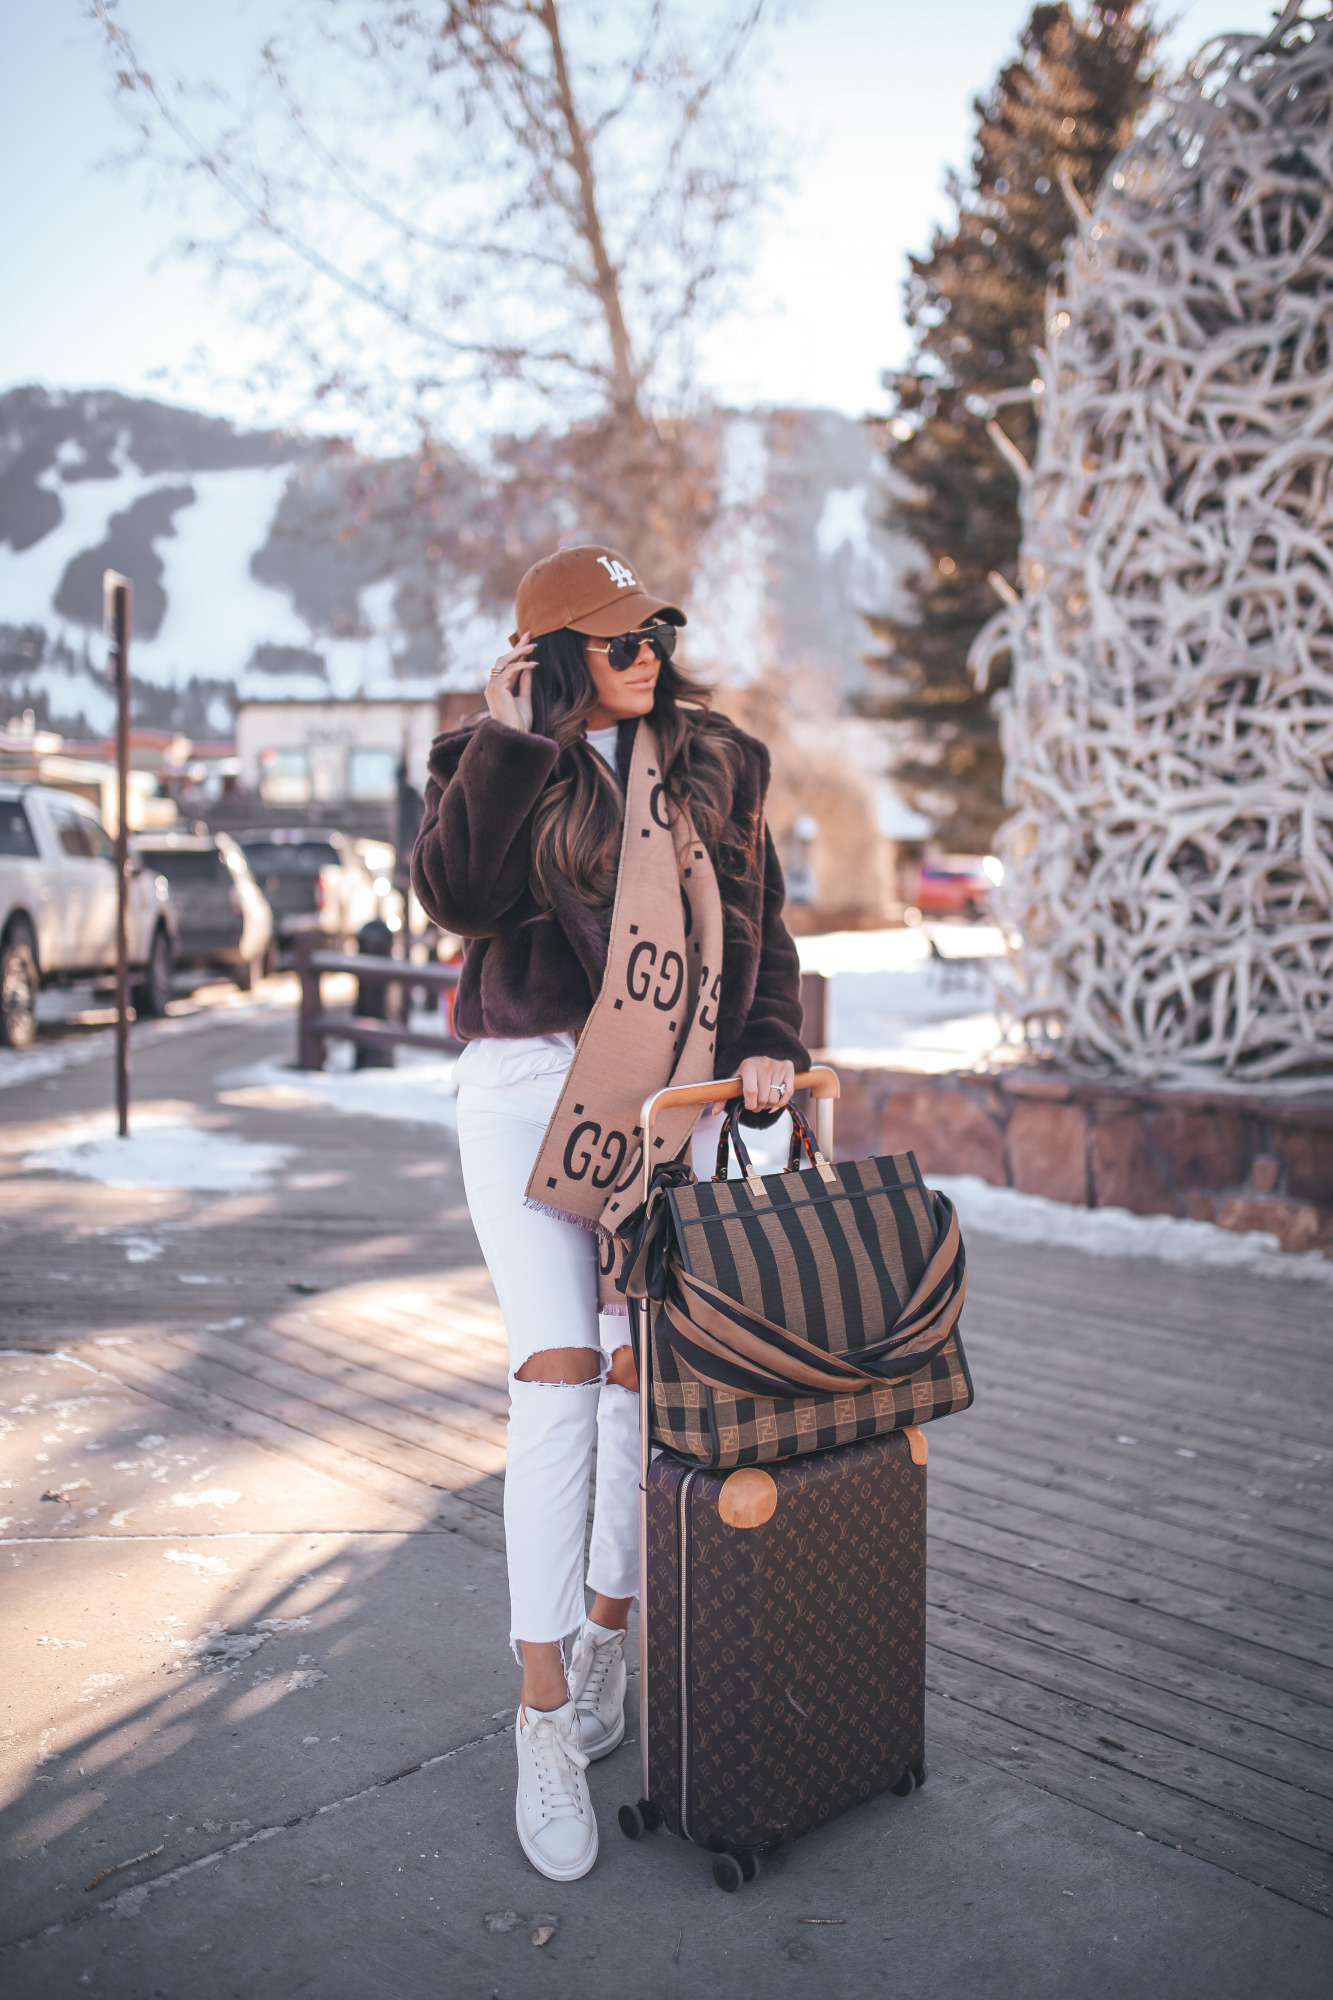 winter fashion outfit idea pinterest 2021, white denim in winter, louis vuitton horizon 55 carry on |Winter Fashion by popular US fashion blog, The Sweetest Thing: image of Emily Gemma standing outside in downtown Jackson Hole, WY and wearing a Free People top, BB Dakota faux fur jacket, distressed white denim jeans, Gucci scarf, '47 brand cap, Le Specs sunglasses, and standing next to a Louis Vuitton rolling suitcase and holding a Fendi tote bag.